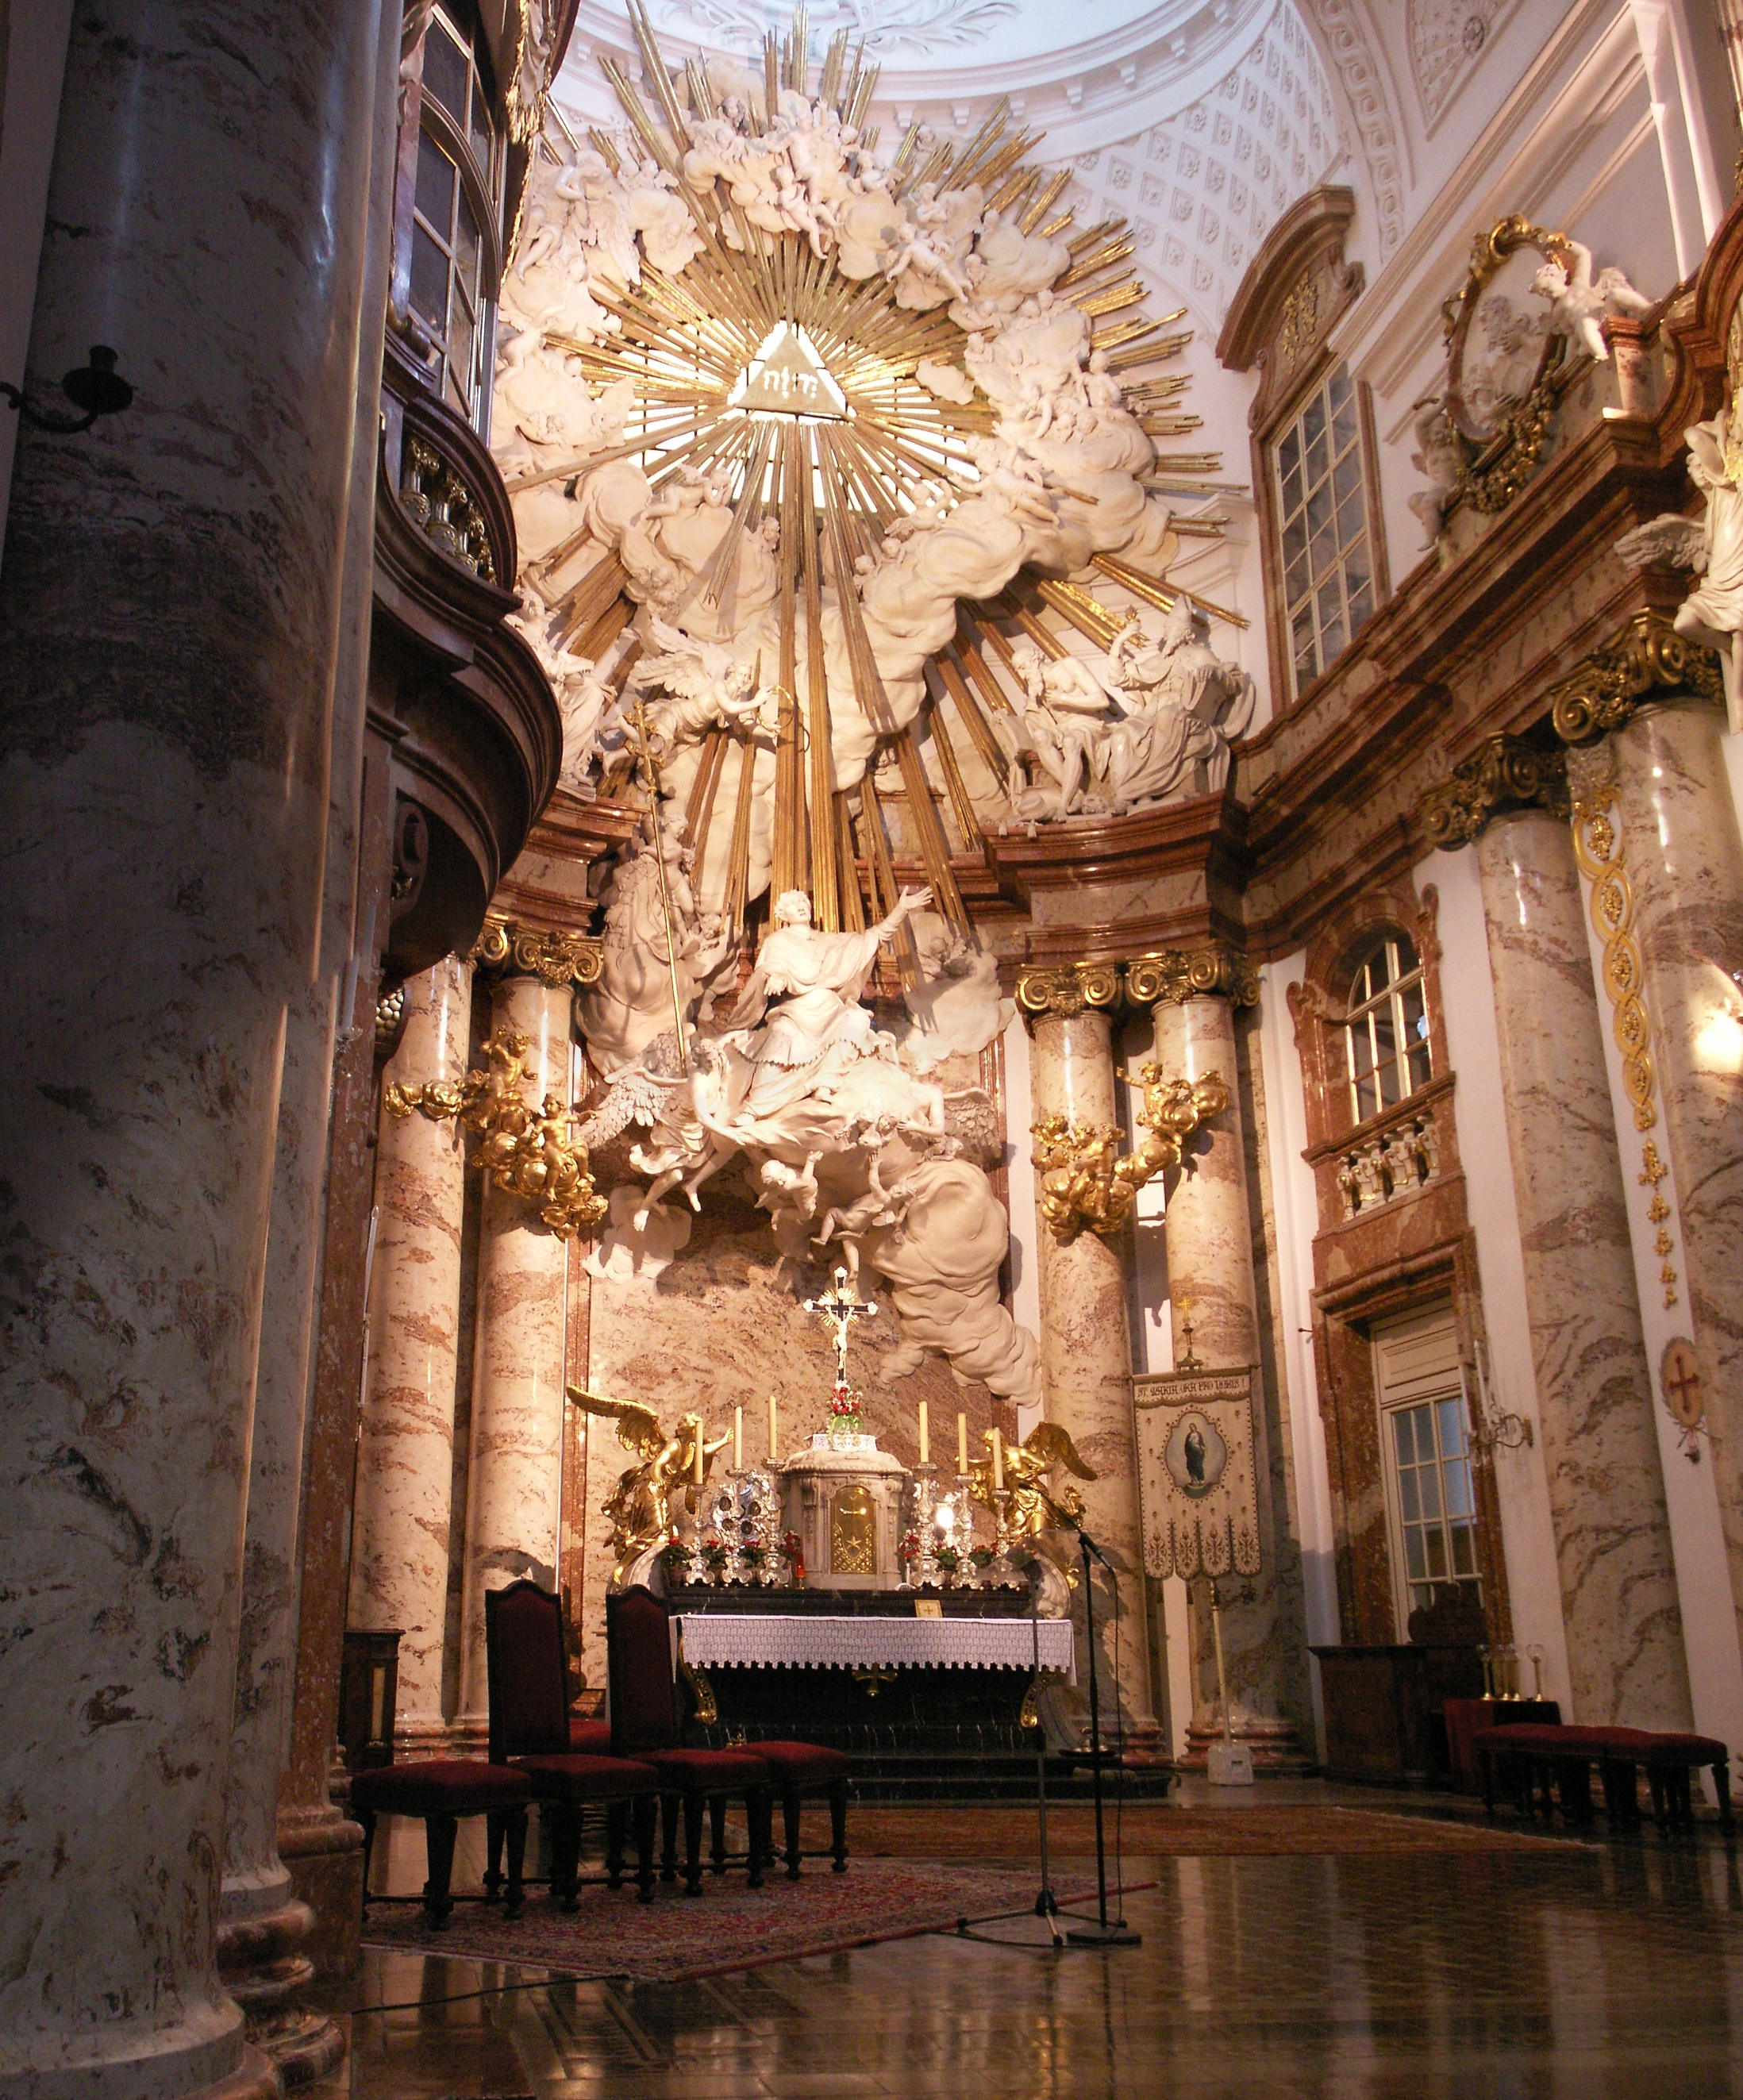 http://upload.wikimedia.org/wikipedia/commons/0/07/Karlskirche4.JPG